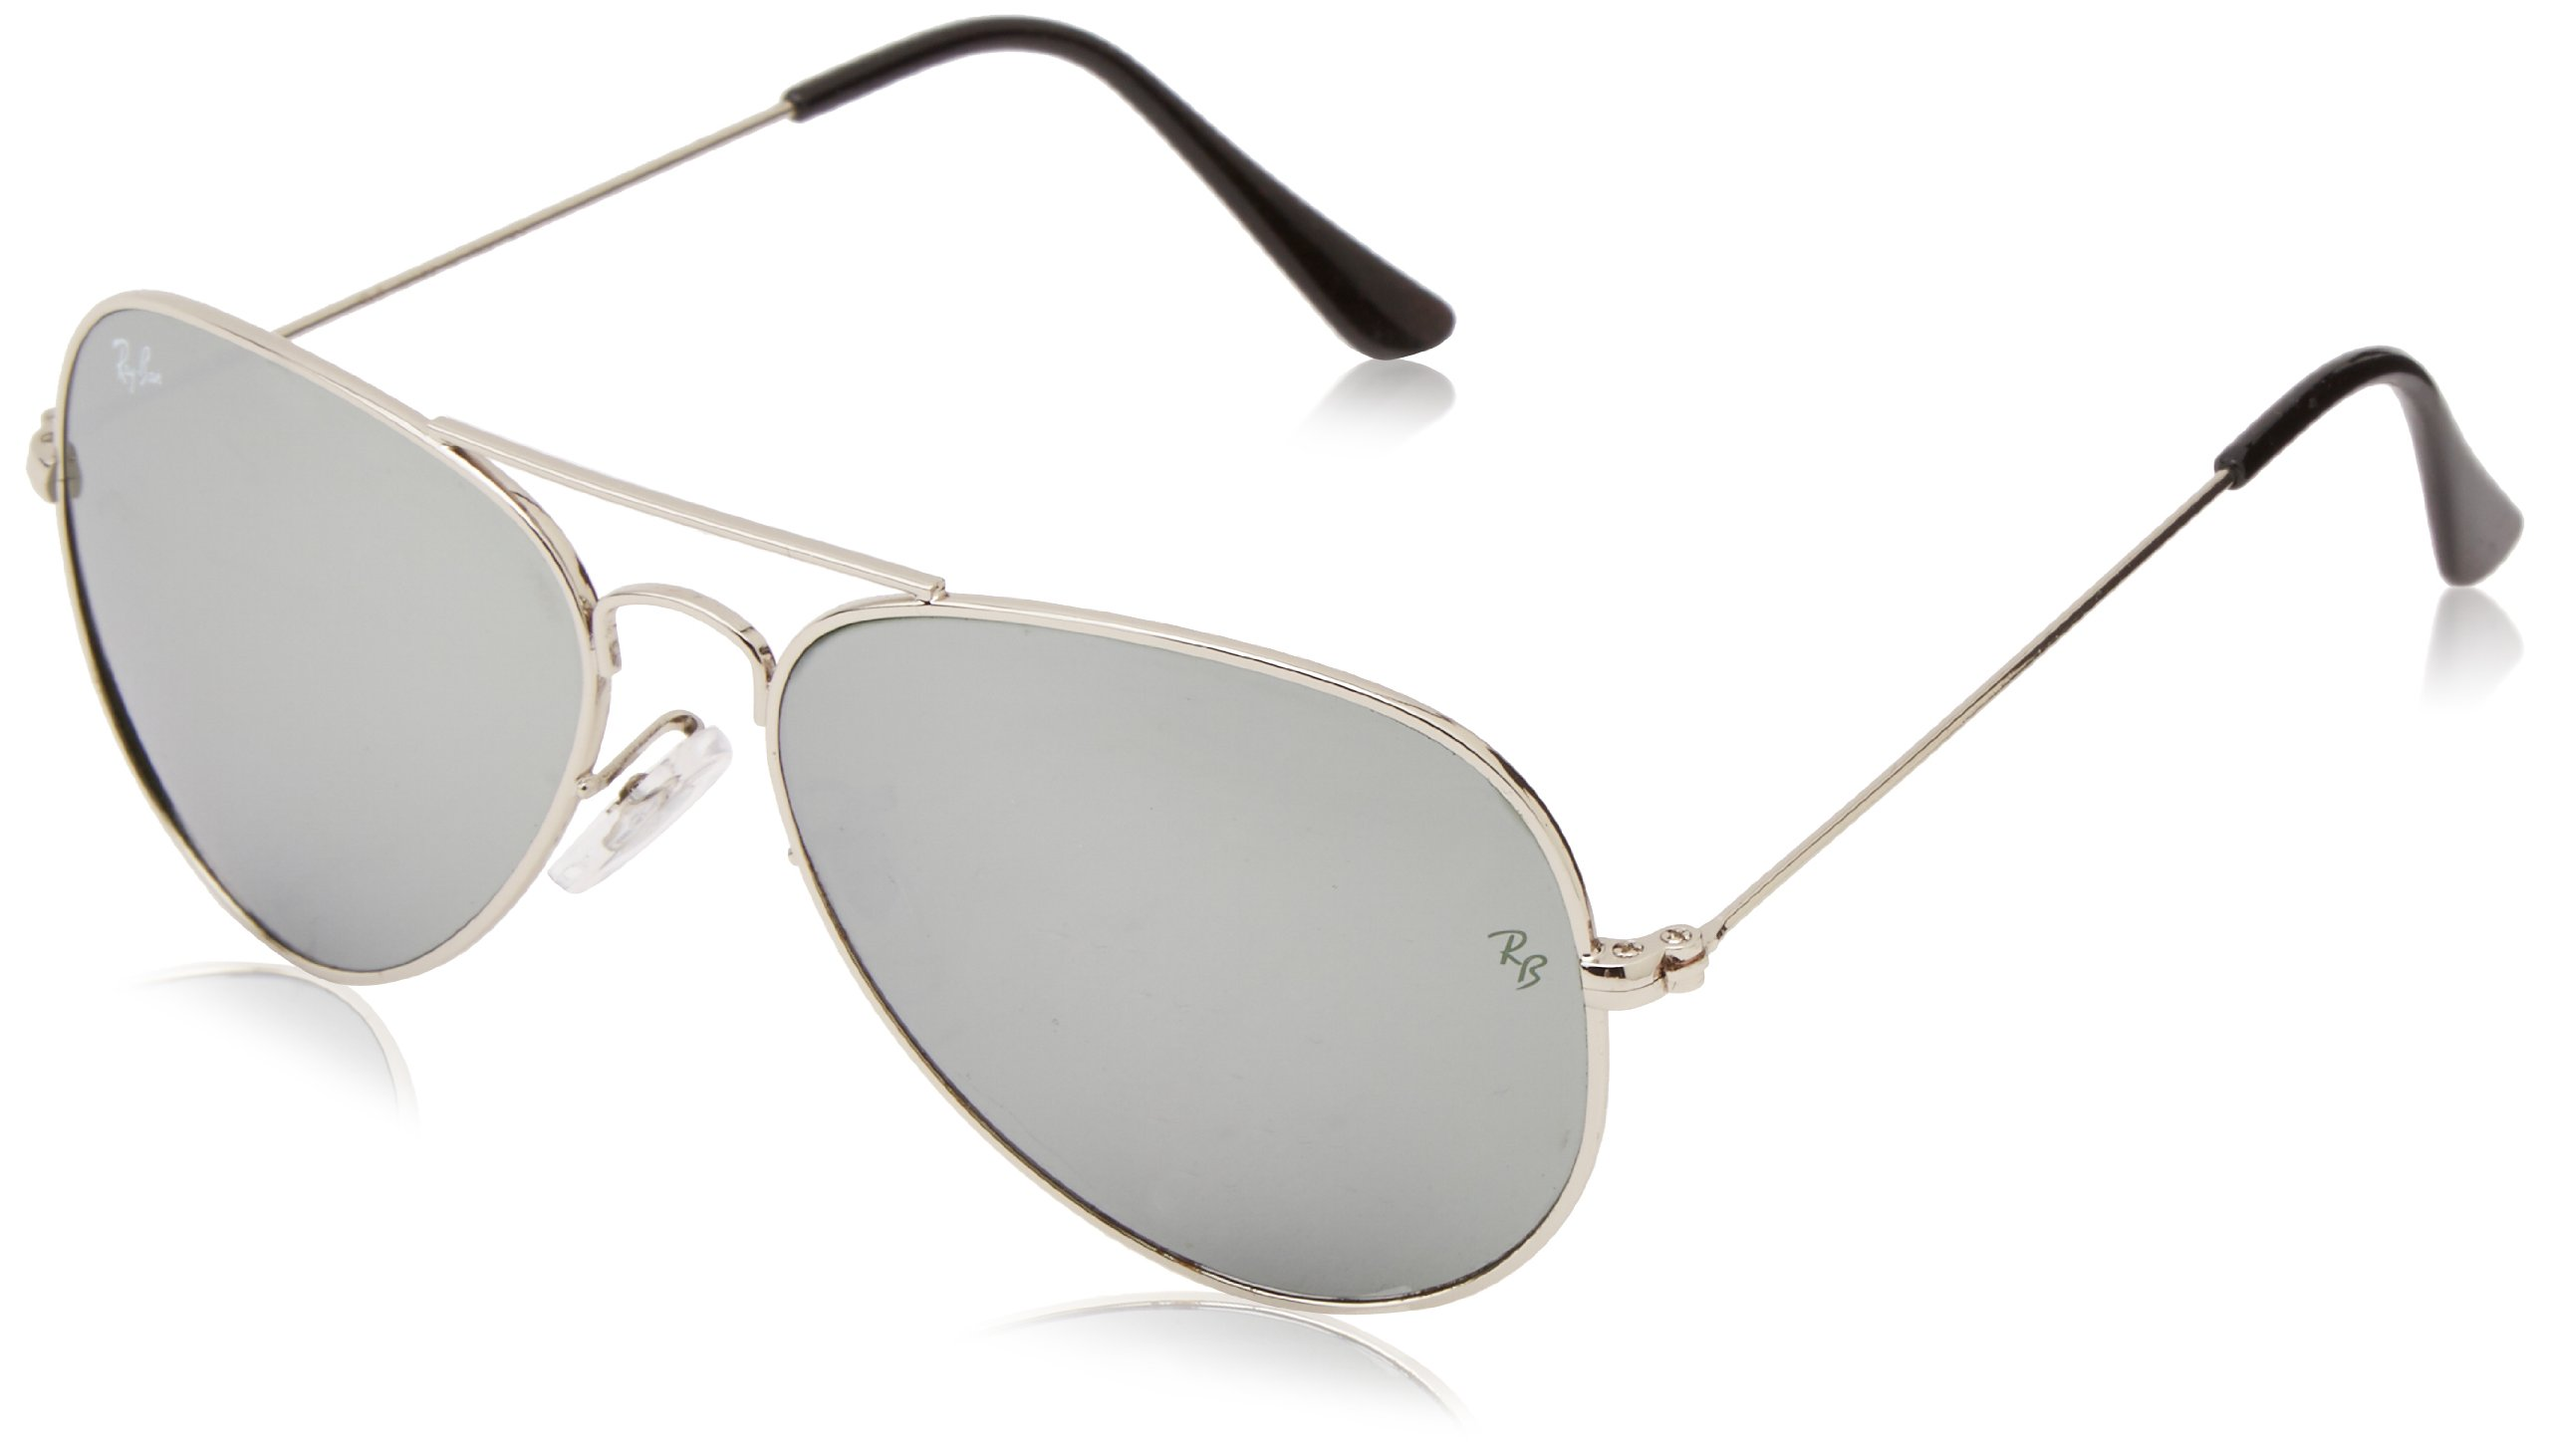 Ray-Ban Aviator Classic, White Metal/ Crystal Grey Gradient, 55mm by Ray-Ban